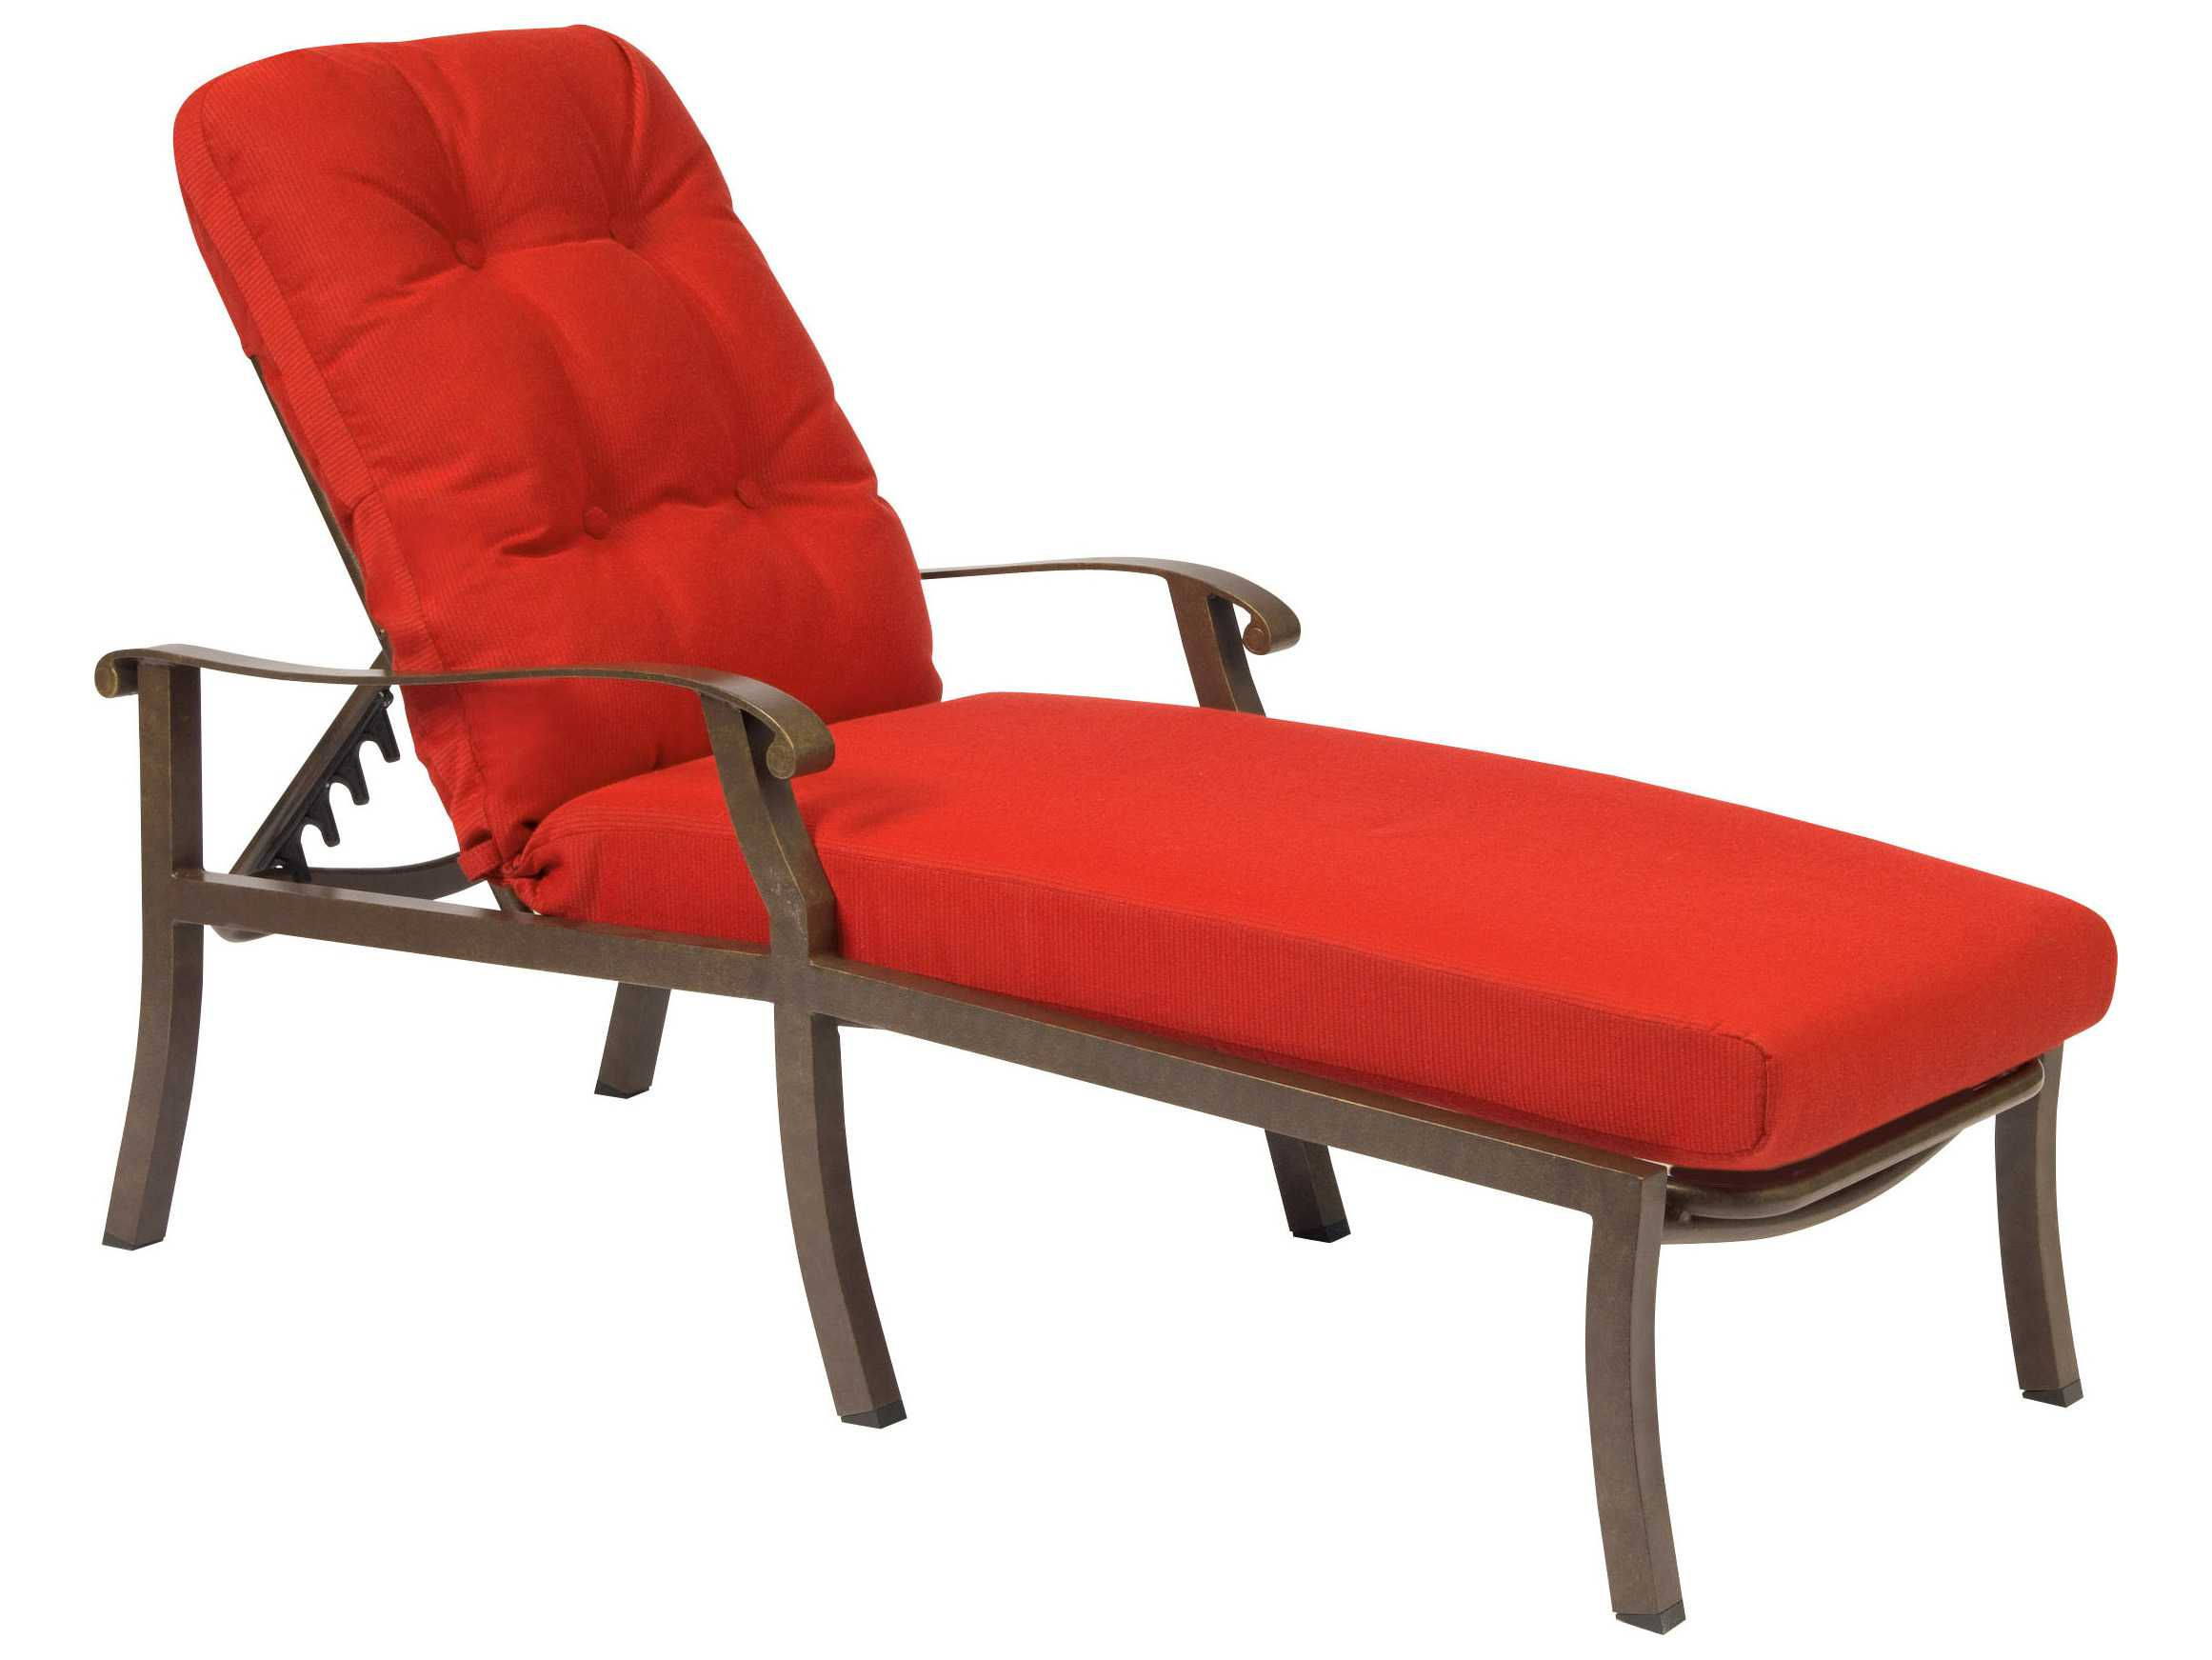 Woodard cortland cushion aluminum adjustable chaise lounge for Chaise longue cushions